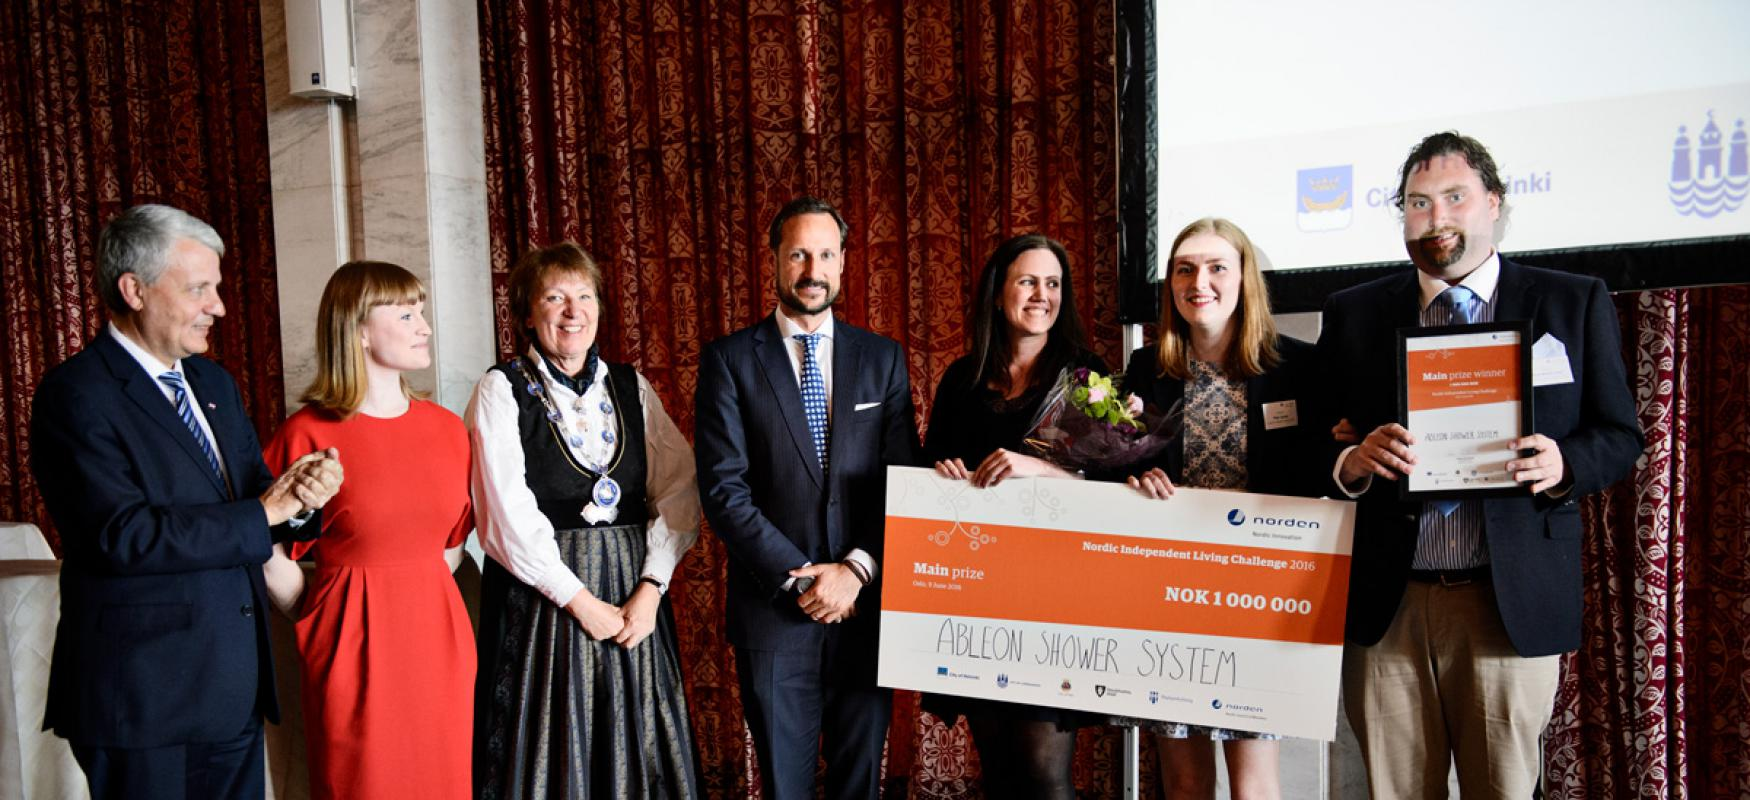 AbleOn Medical receiving the main price from Dagfinn Høybråten, Clara Lindblom, Marianne Borgen and His Royal Highness Crown Prince Haakon of Norway.